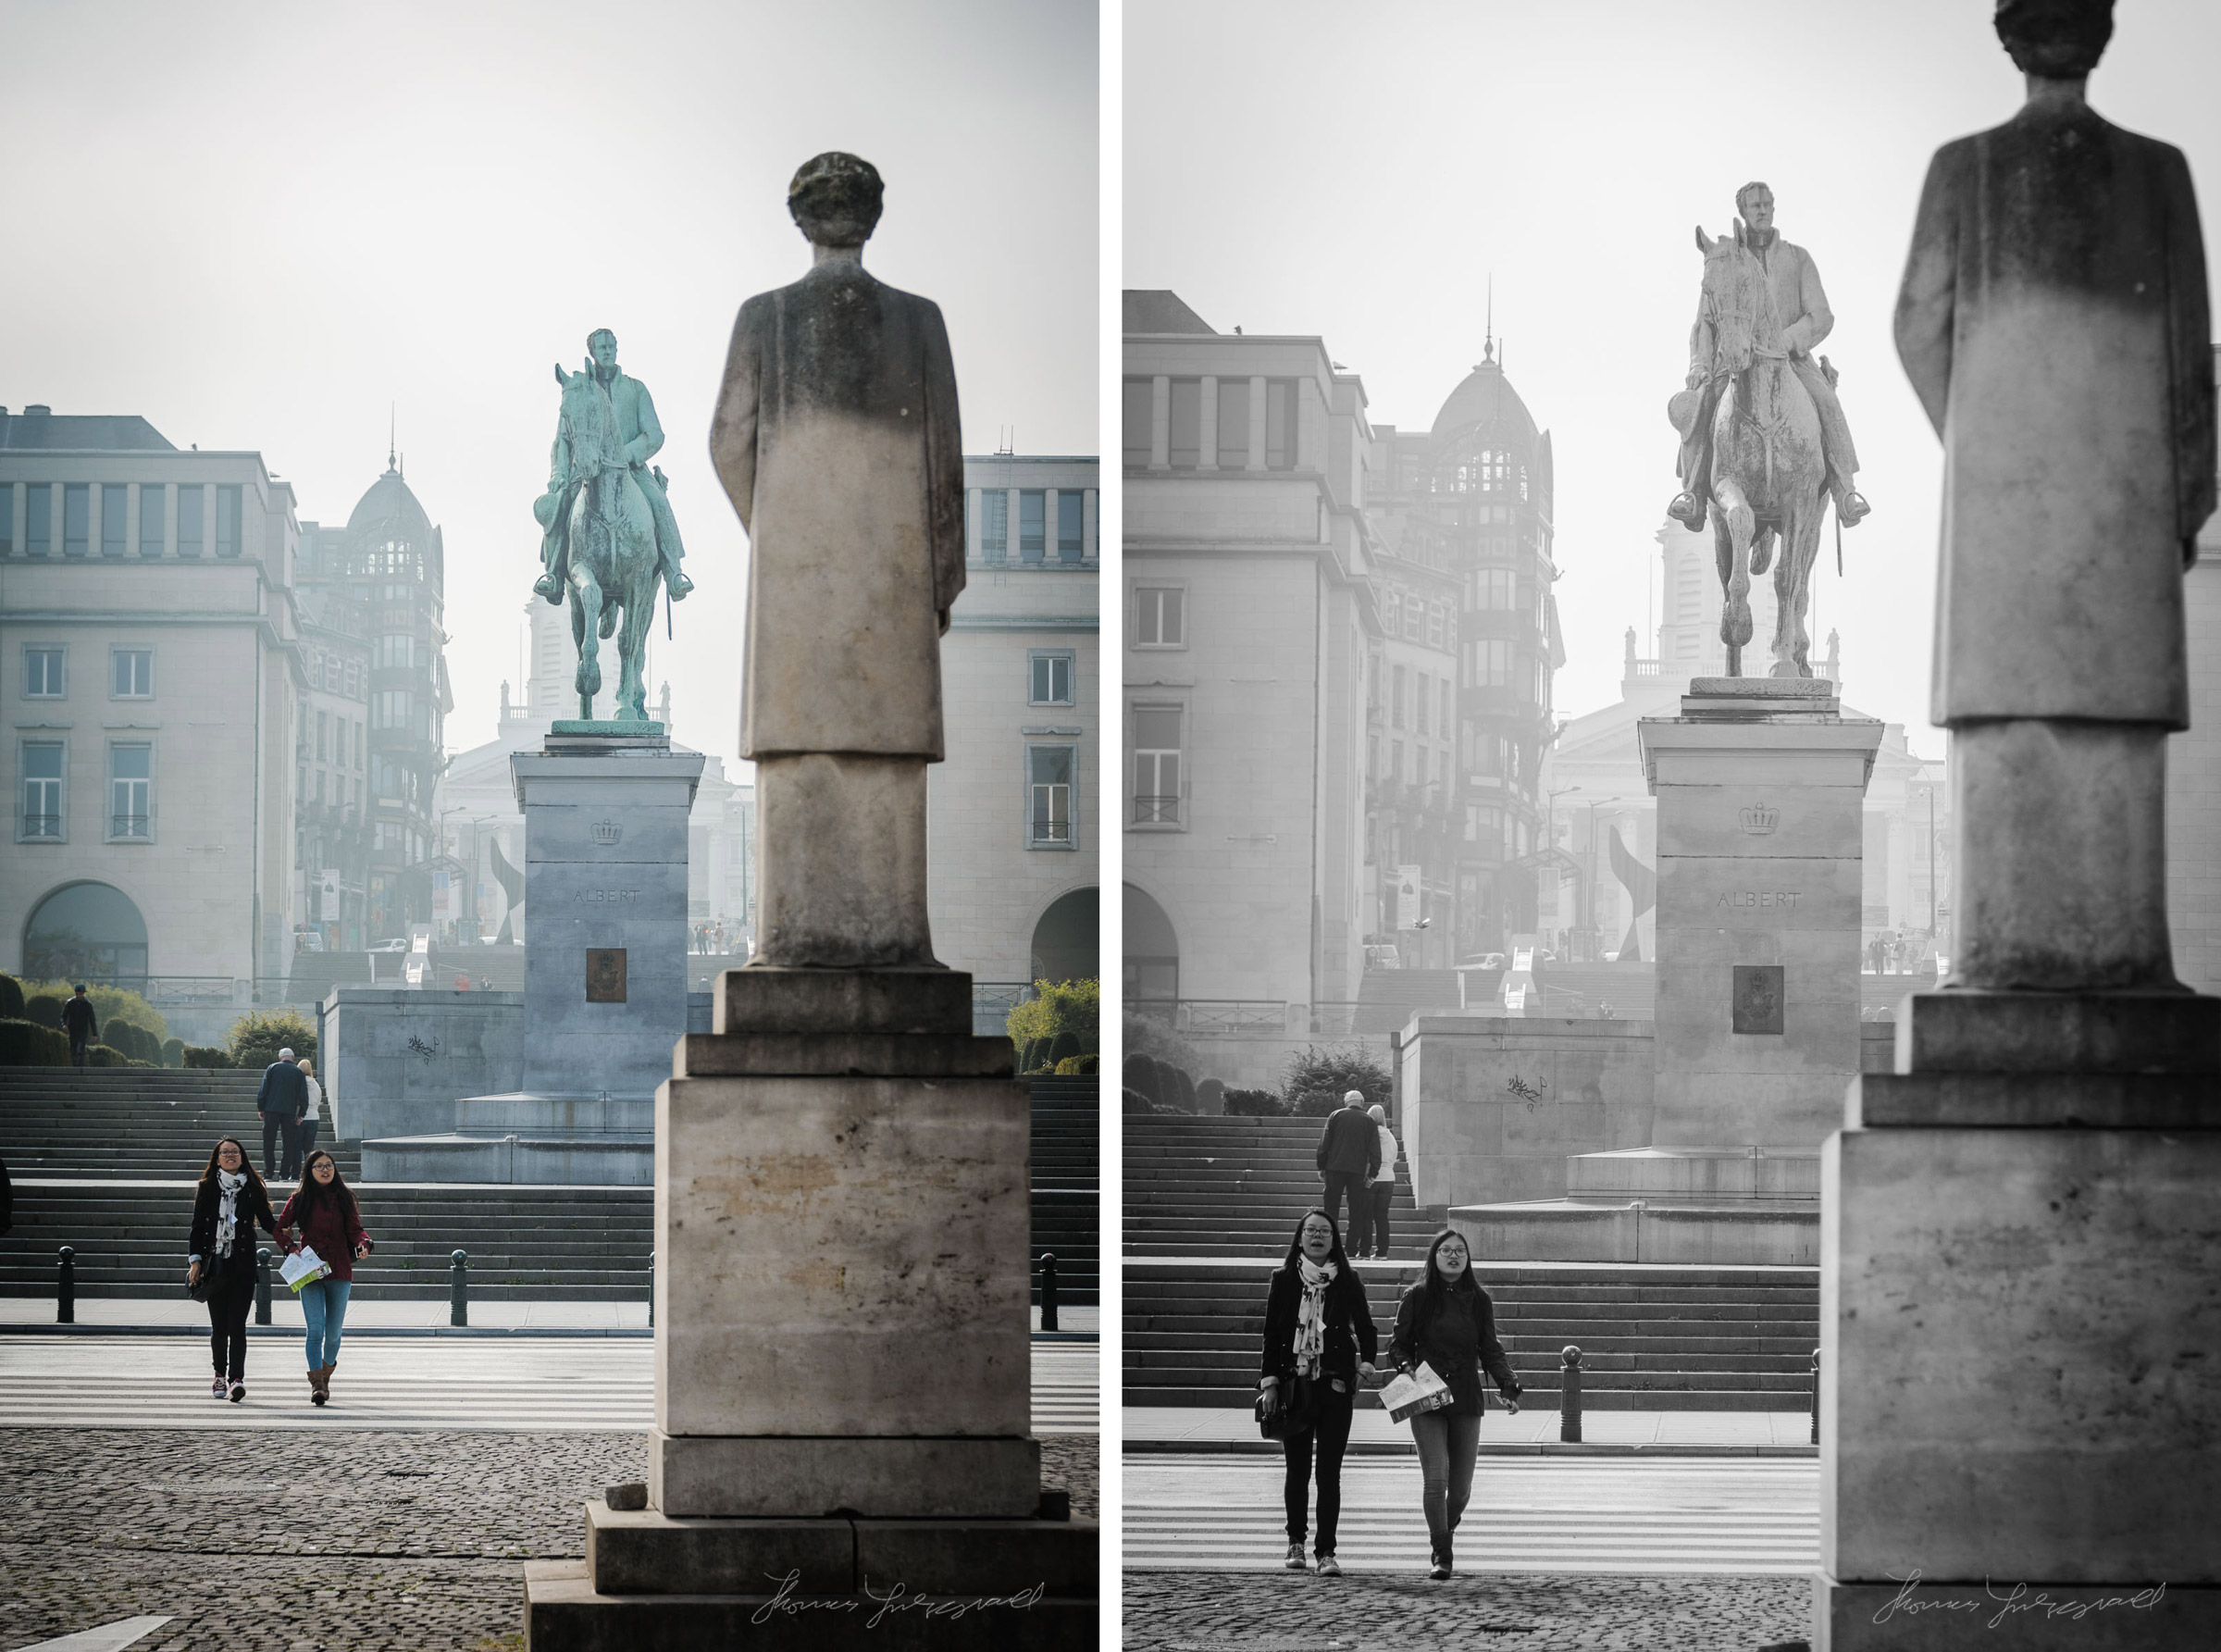 Girls and statues